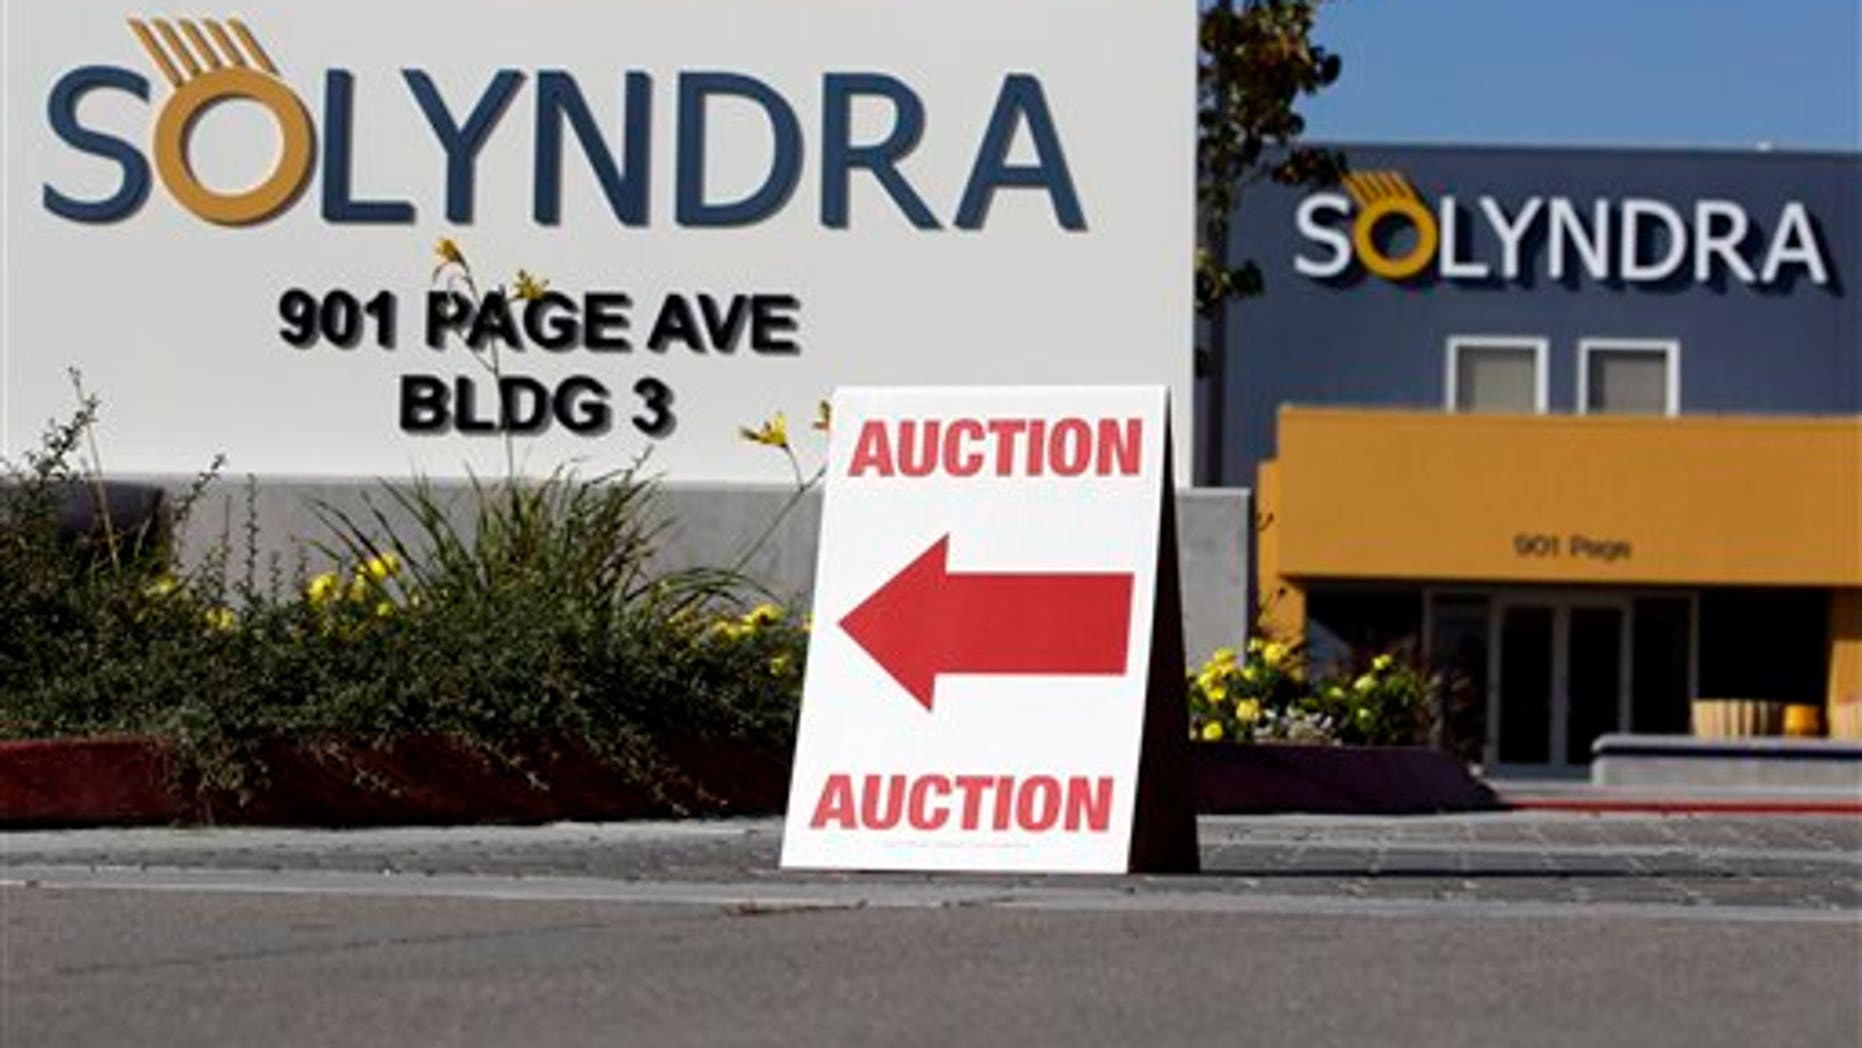 Oct. 31, 2011: An auction sign is shown at bankrupt Solyndra headquarters in Fremont, Calif.,  before Wednesday's auction. Solyndra received a one half billion dollar loan guarantee from the government before filing for bankruptcy in Sept. 2011.